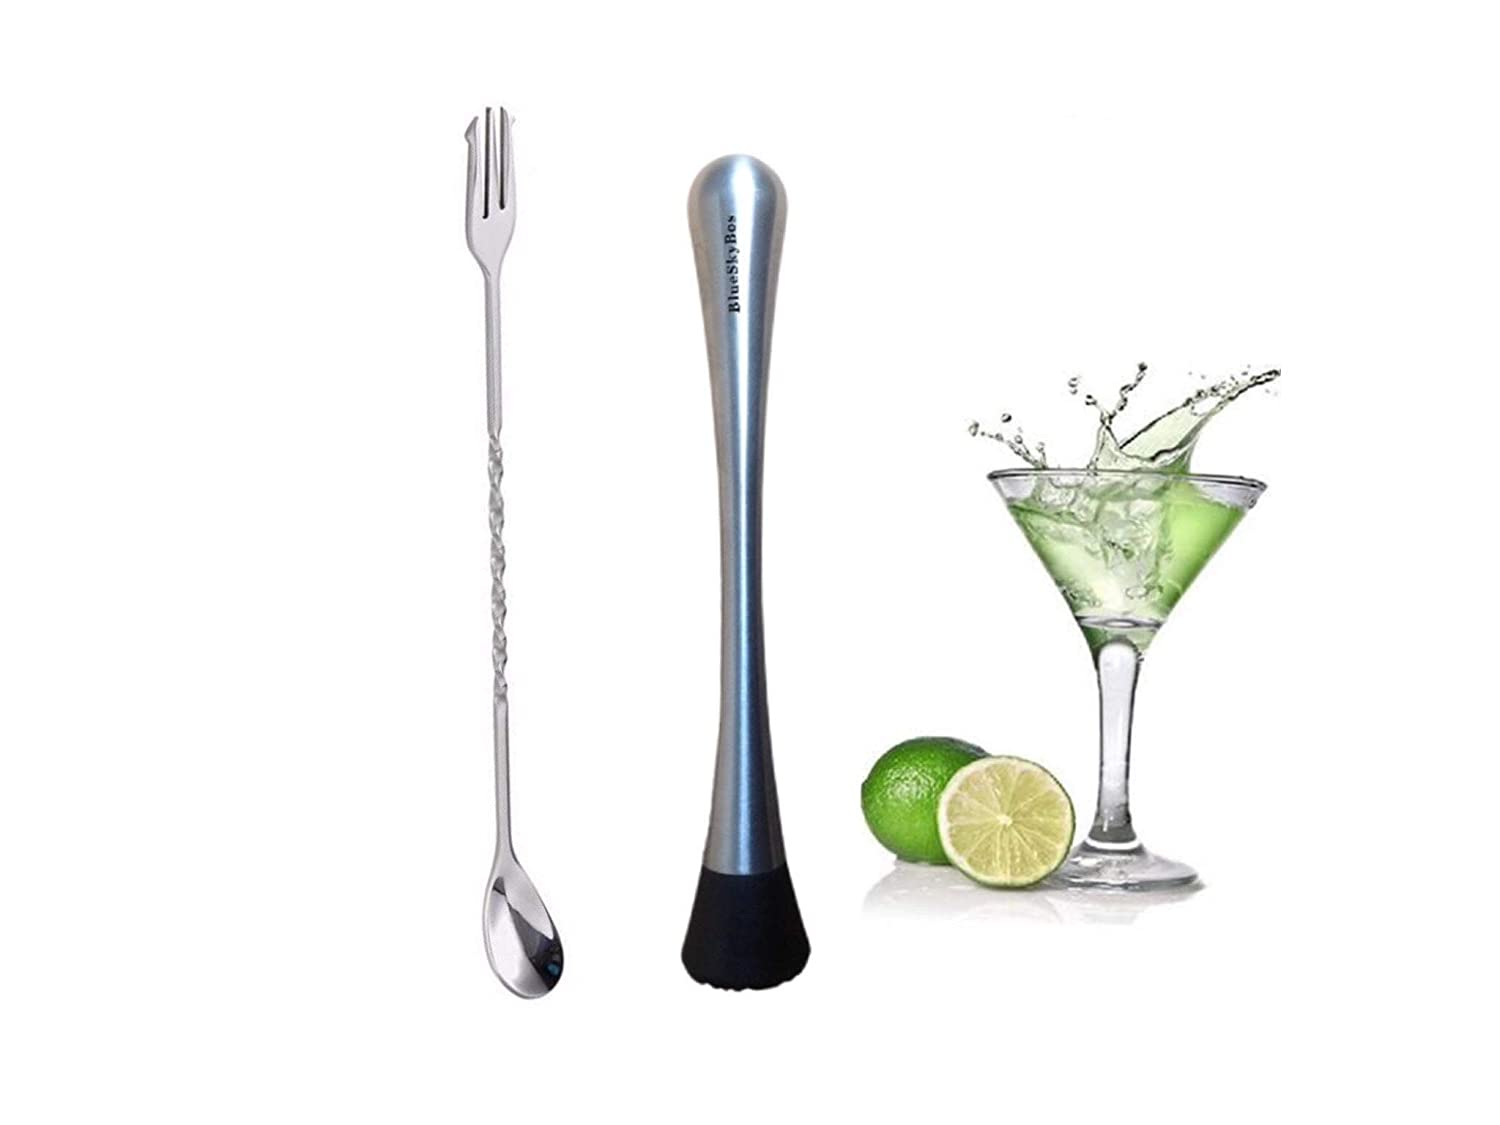 BlueSkyBos Stainless Steel Cocktail Muddler Mixed Spoon, Mashes Fruits, Herbs and Spices for Cocktails - Professional Grade Bar Tool - Make Perfect Mojitos, Old Fashioneds, Mint Juleps & Many Others